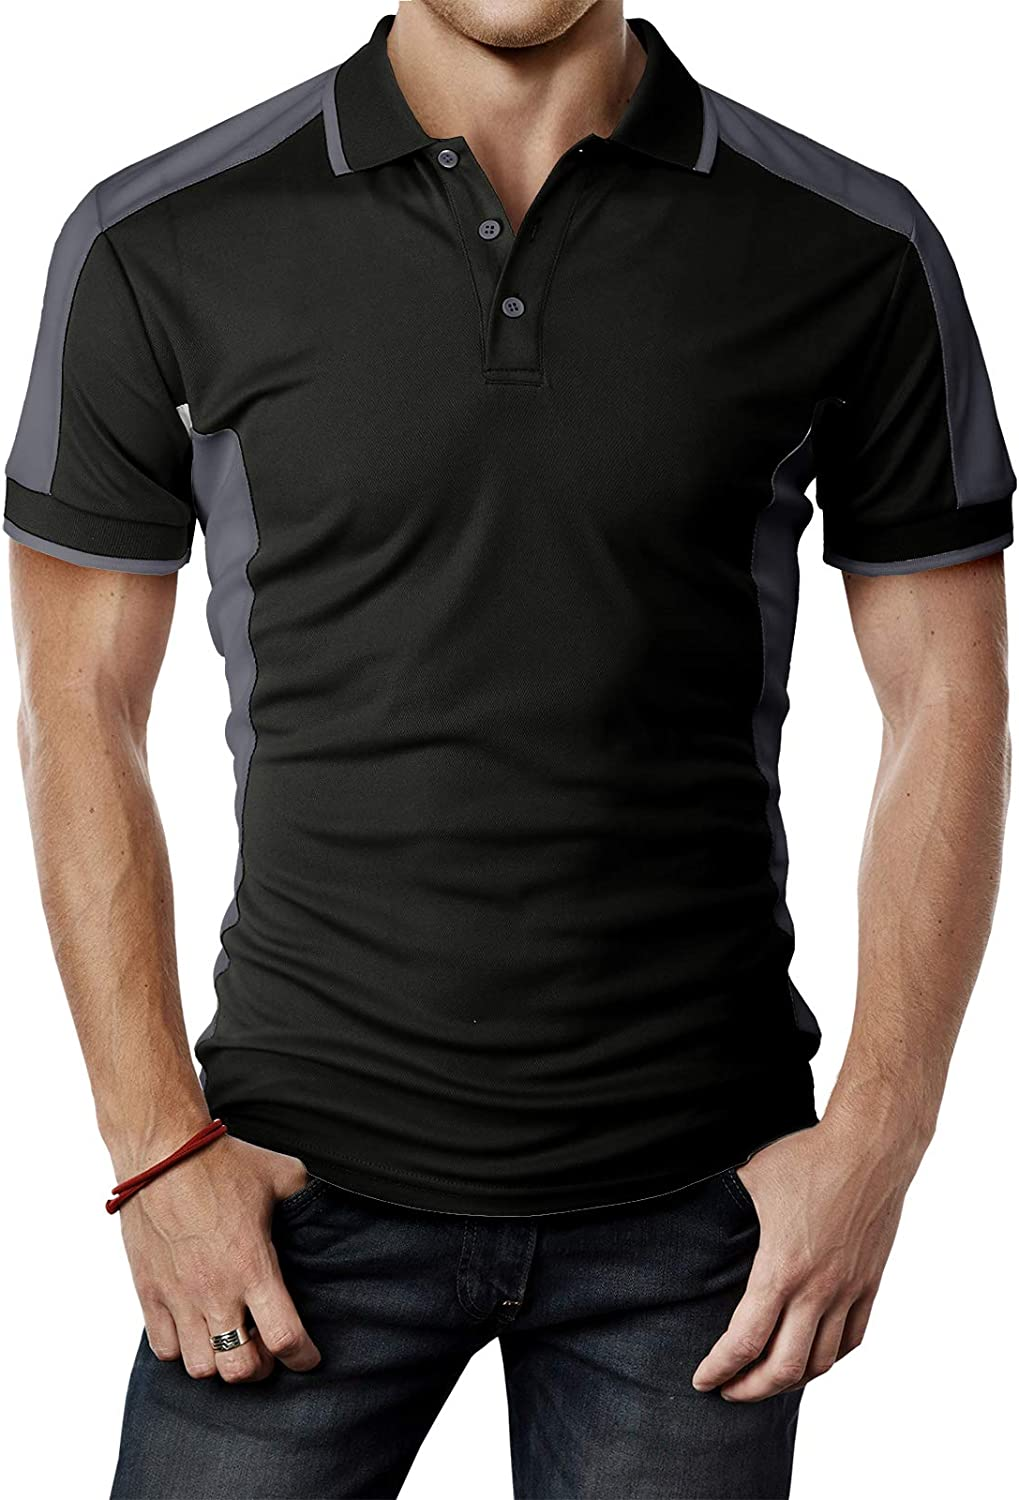 H2H Mens Active Cool Dry Cool-Pass Short Sleeve Polo T-Shirts of Various Styles